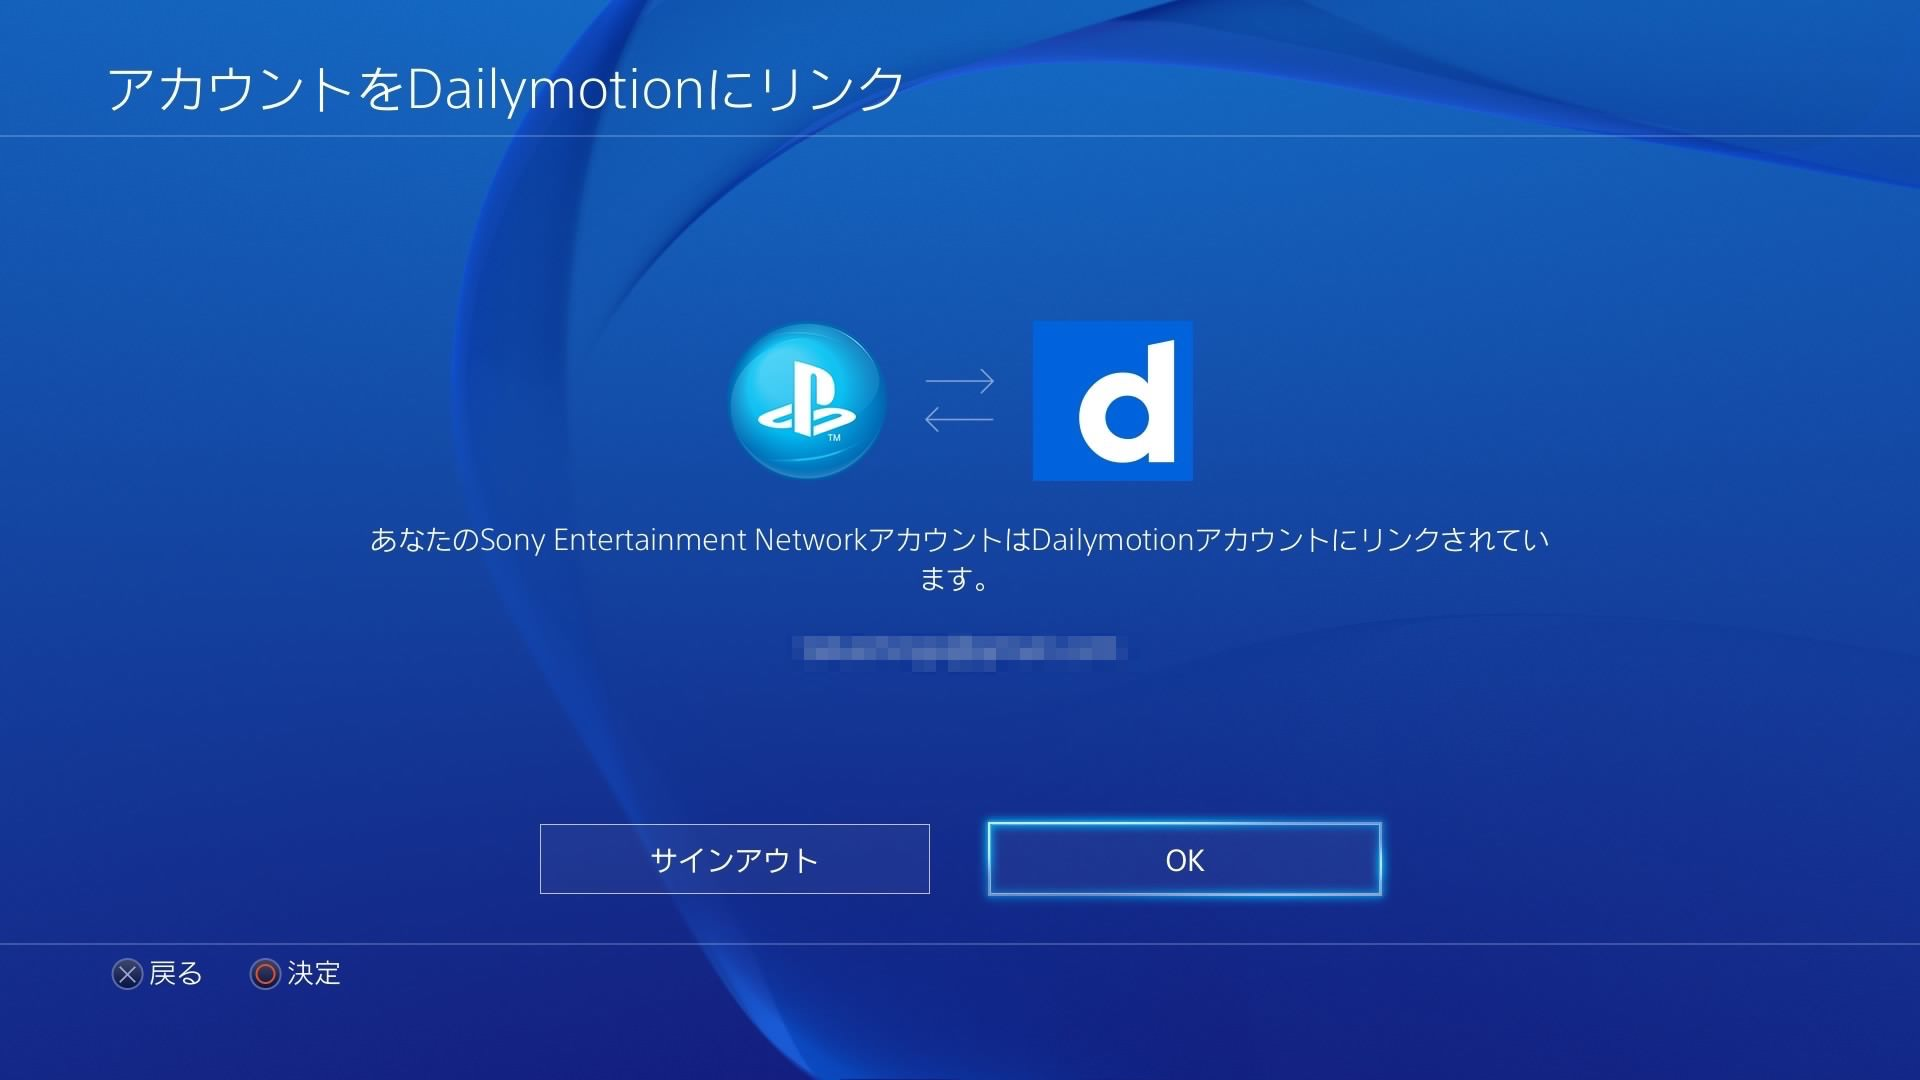 How to upload videos from ps4 to dailymotion 08